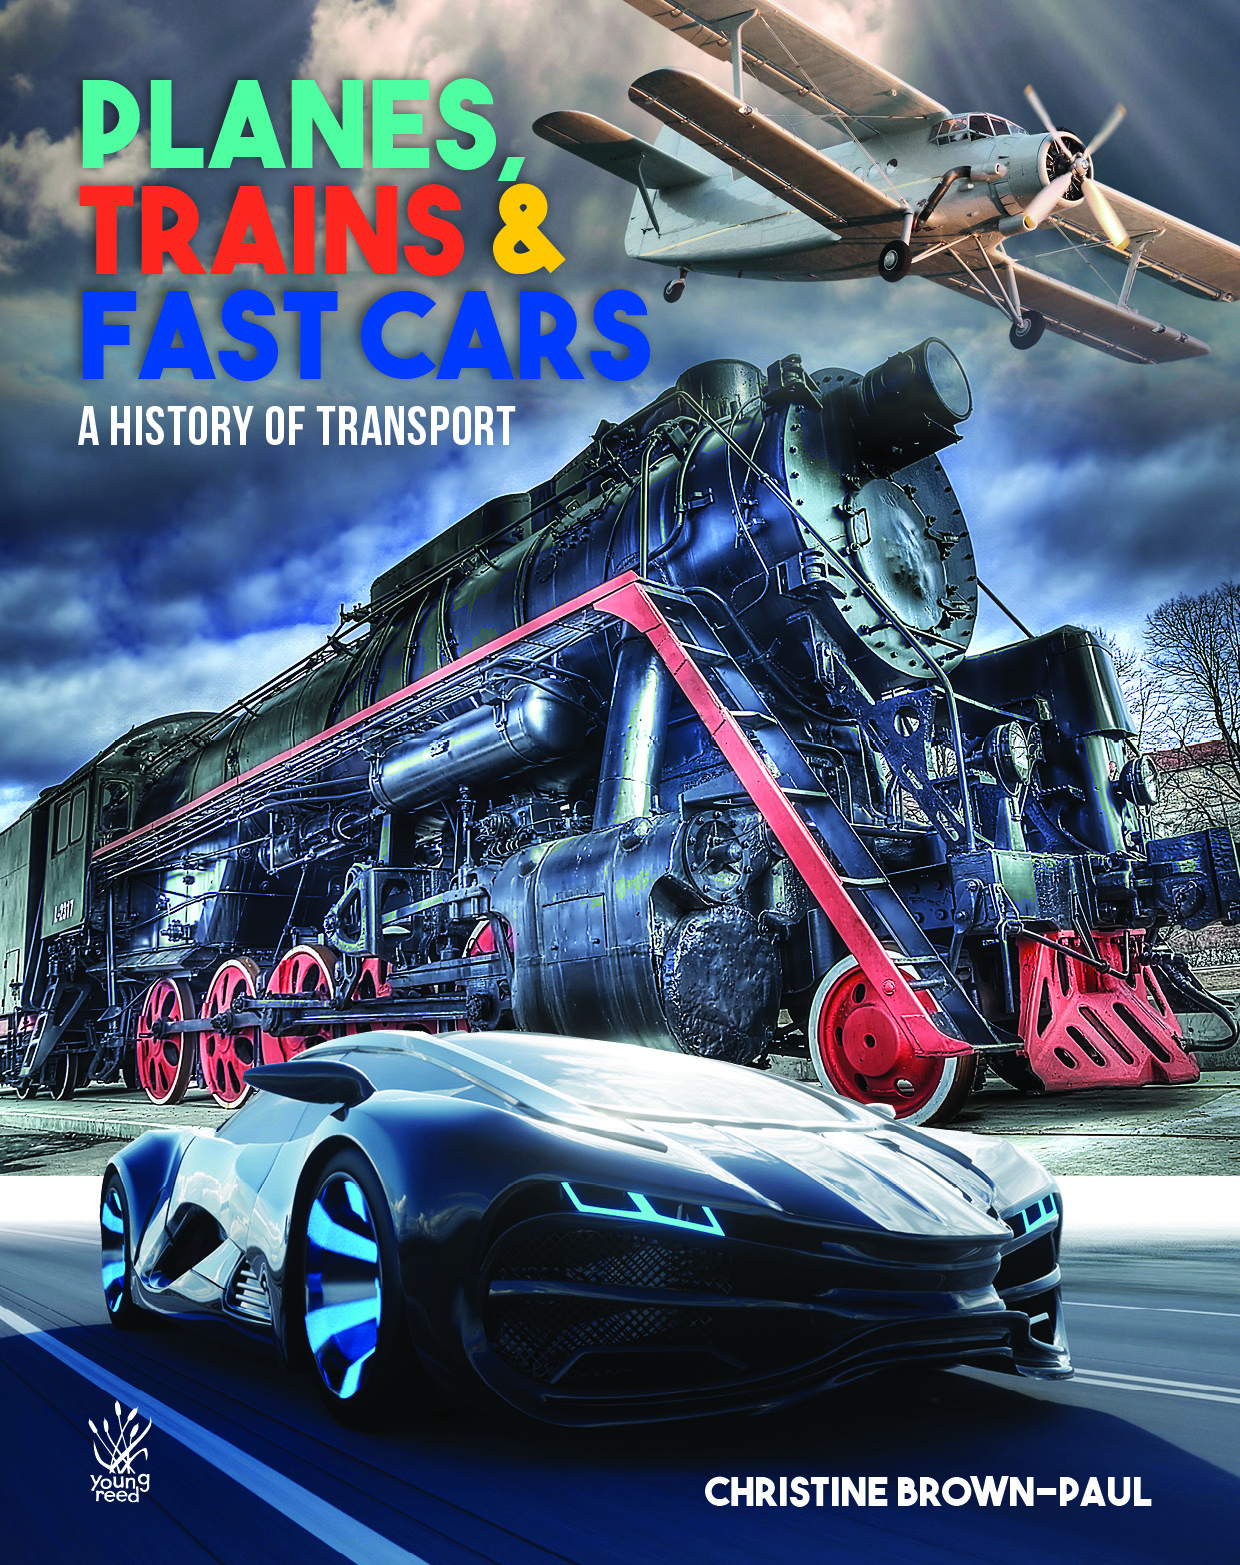 YR: Planes, Trains & Fast Cars